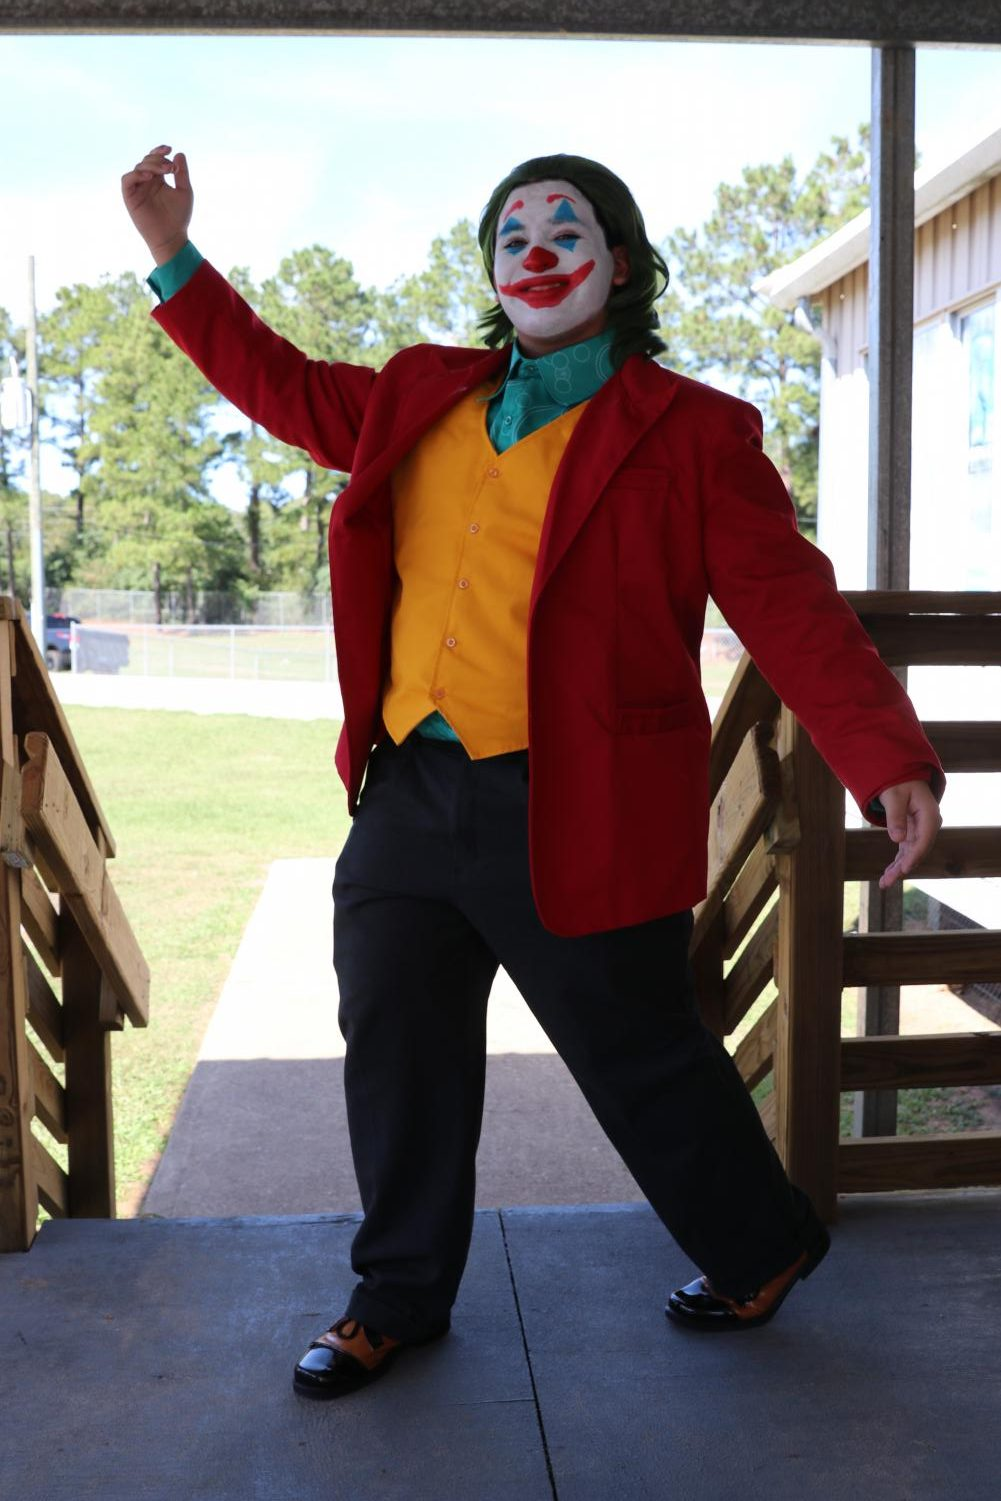 Bringing the Joker to life at Klein Oak, junior Trey Munoz emulates the classic pose.